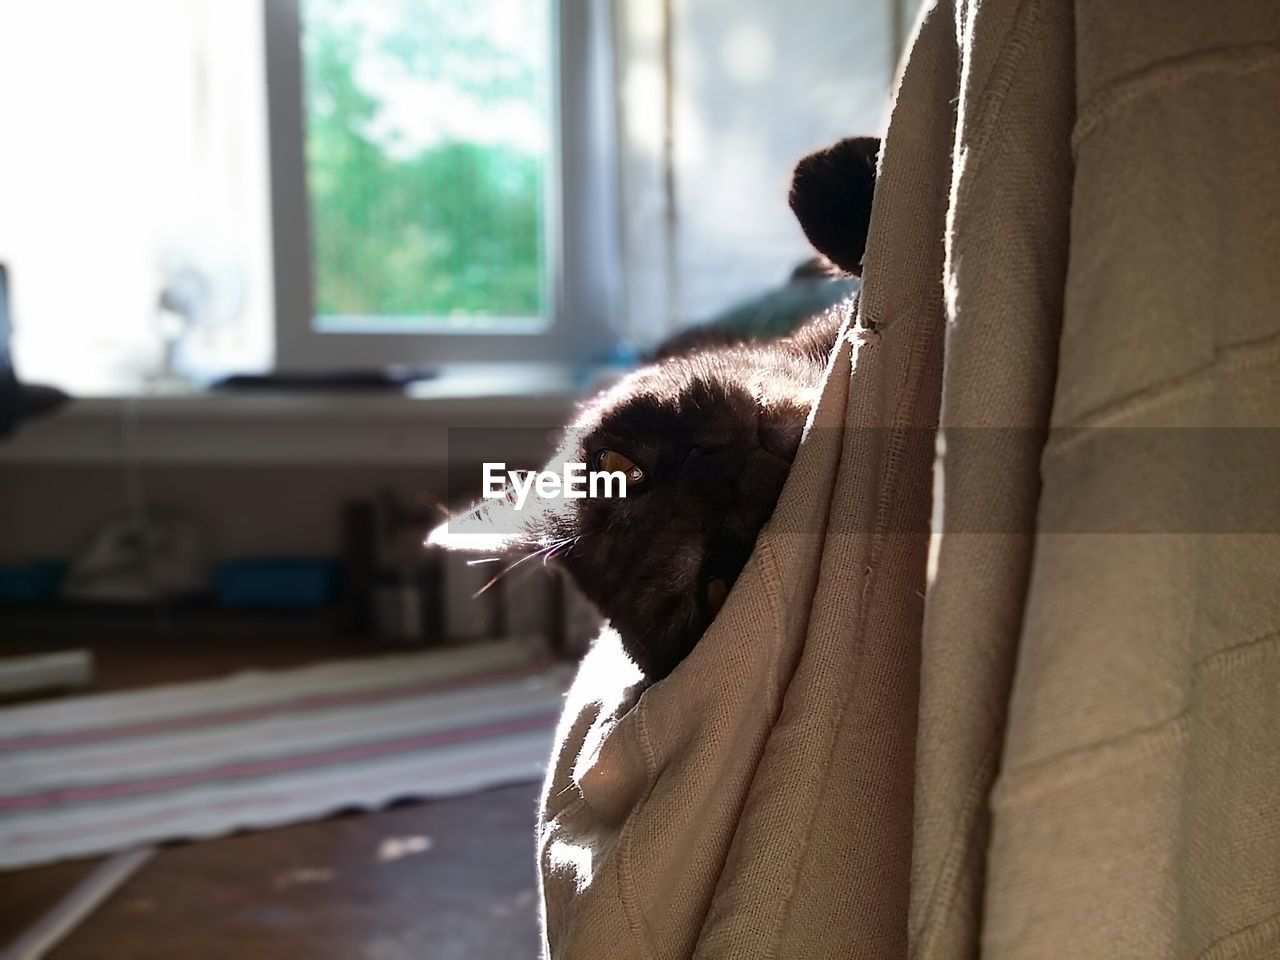 one animal, pets, domestic animals, domestic, mammal, indoors, home interior, vertebrate, window, focus on foreground, cat, feline, one person, lifestyles, domestic cat, day, portrait, whisker, pet owner